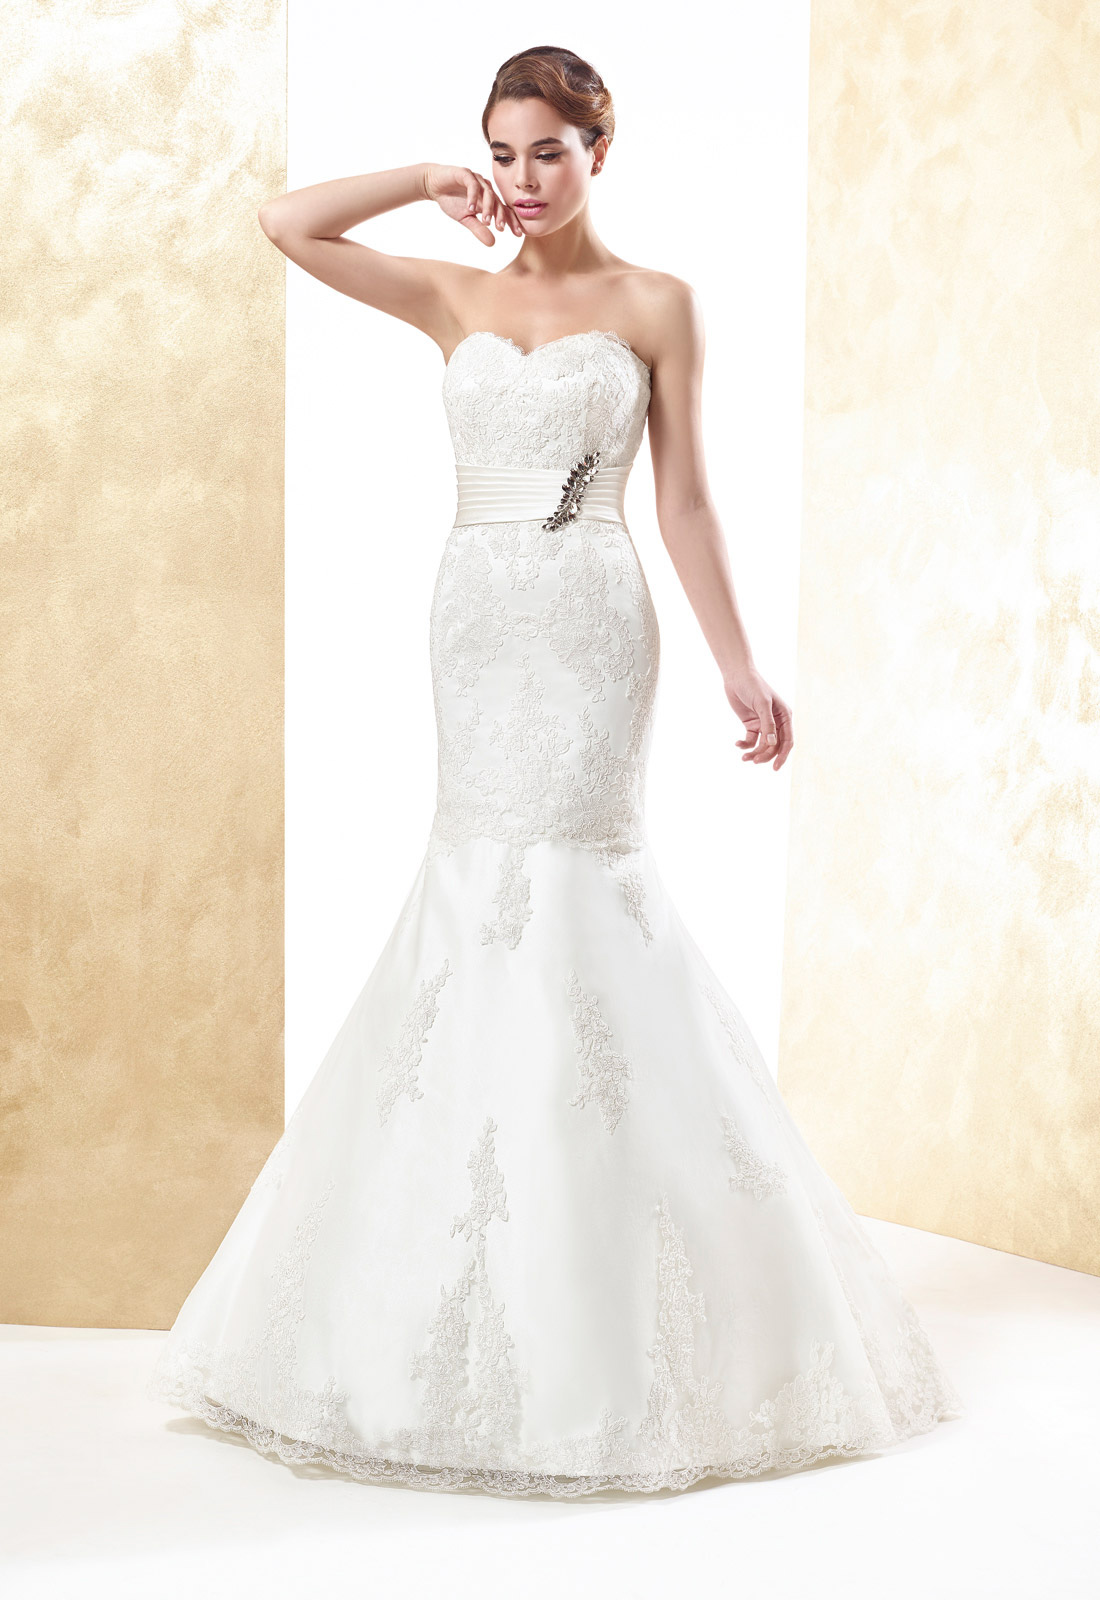 Sexy Trumpet/Mermaid Sweetheart Crystal Detailing Lace Sweep/Brush Train Wedding Dresses